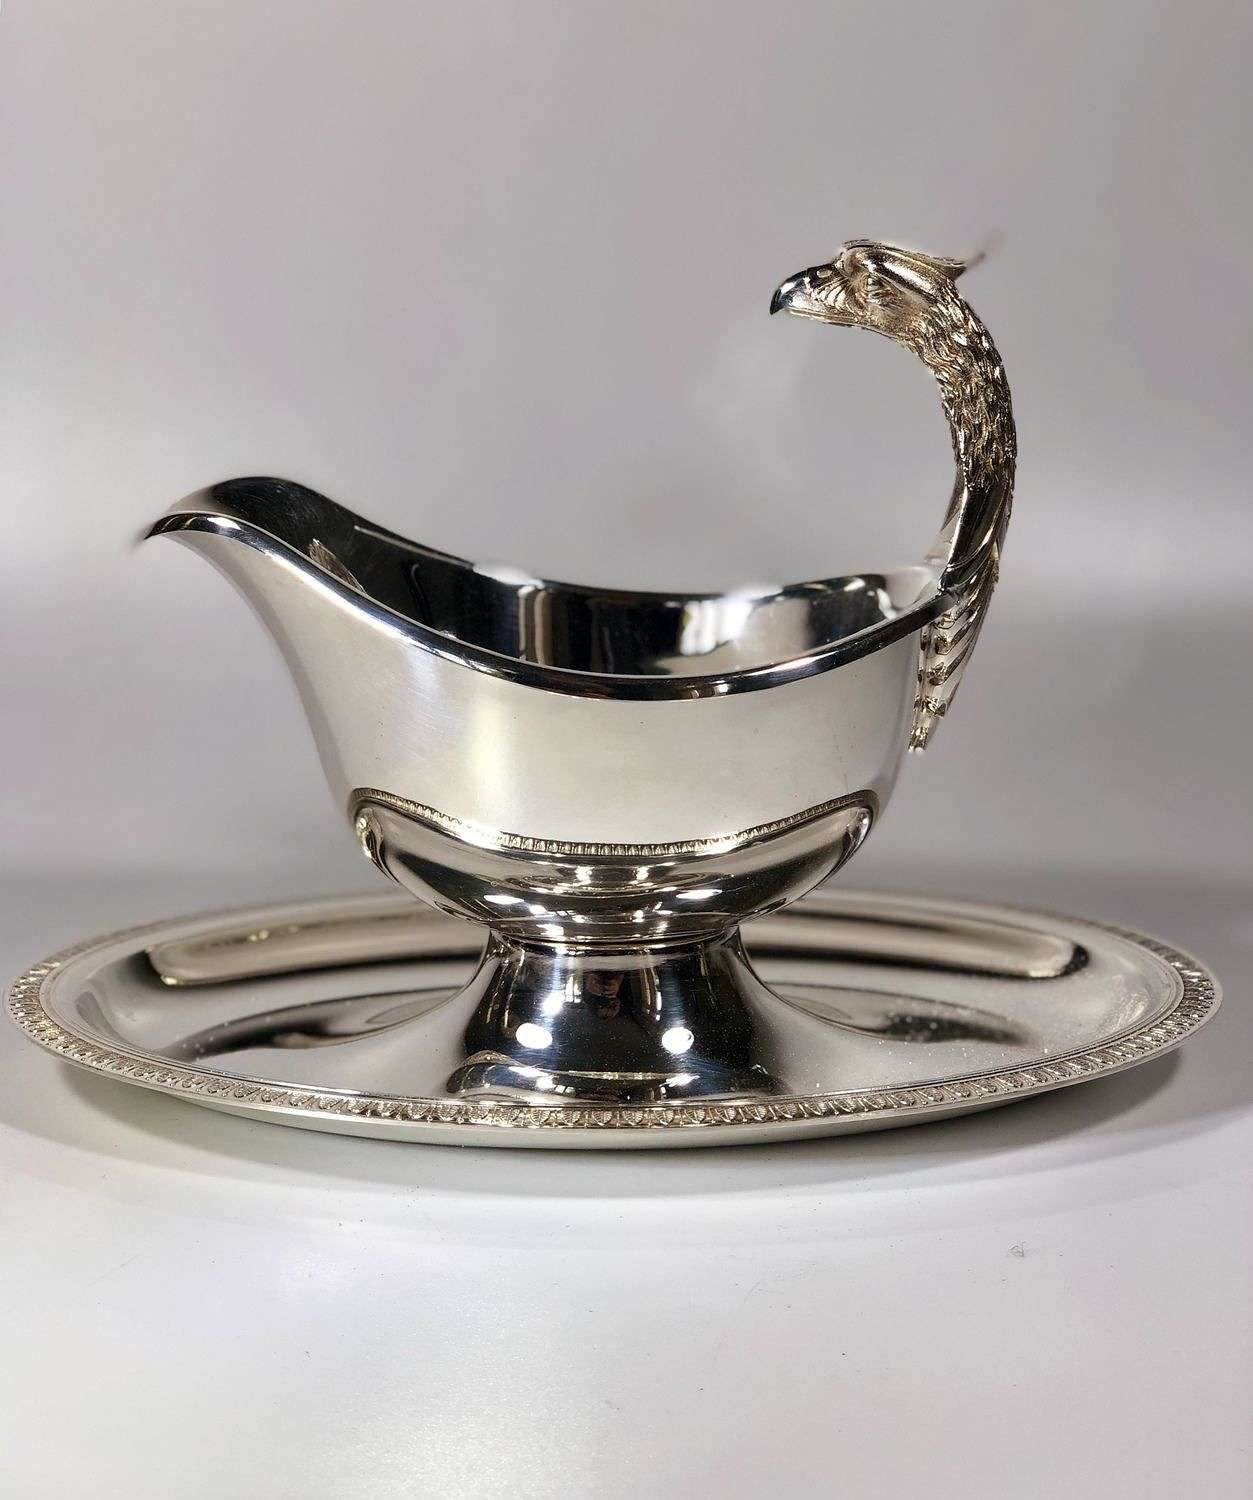 Christofle Malmaison silver plated gravy boat and tray